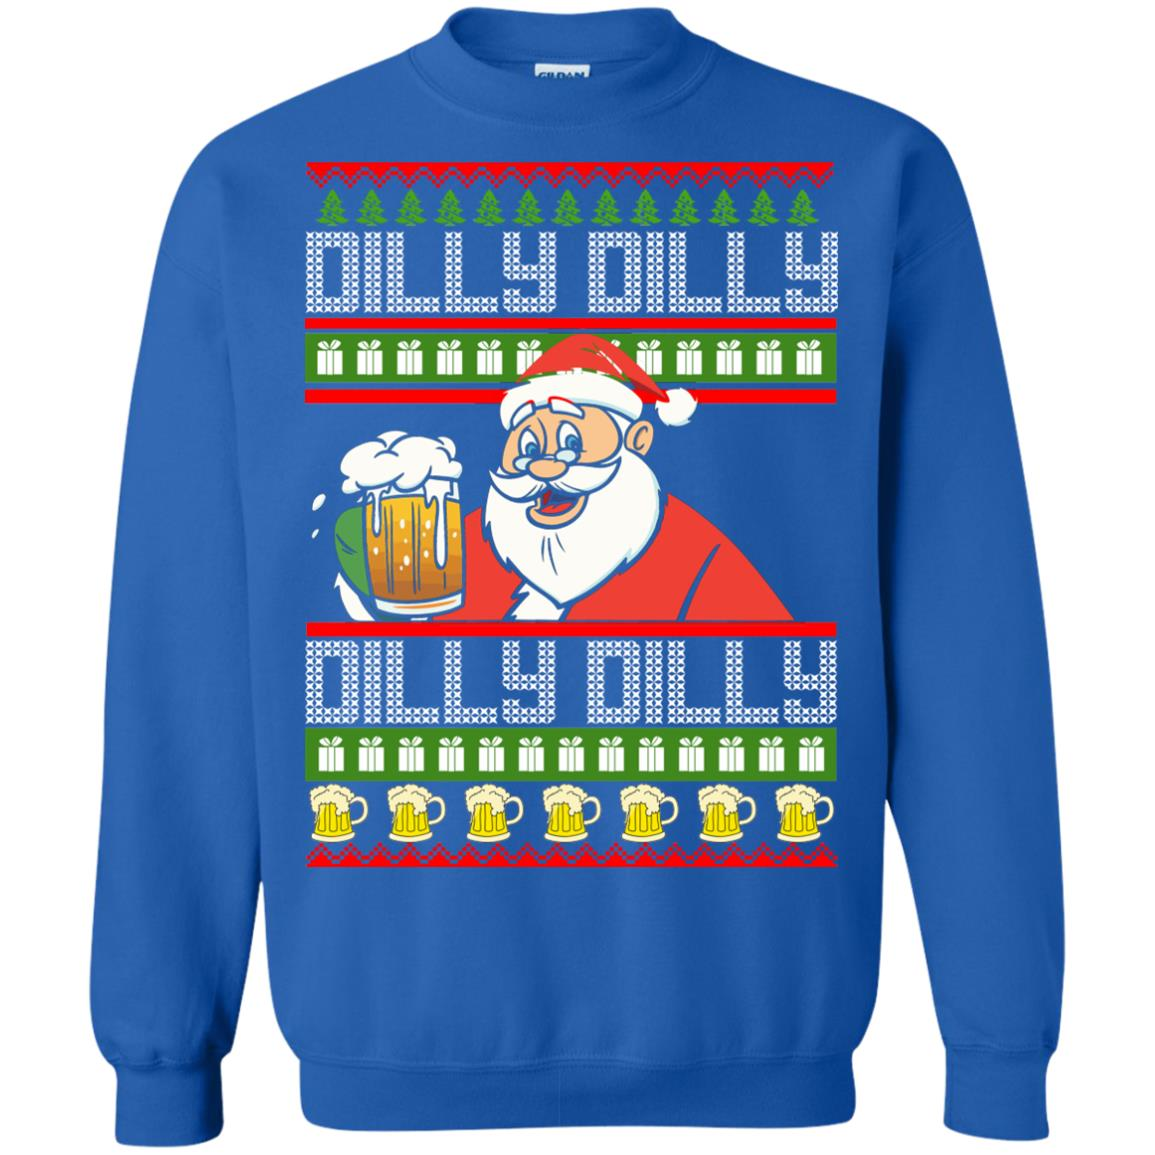 image 4192 - Dilly Dilly Christmas Sweater, Shirt, Hoodie